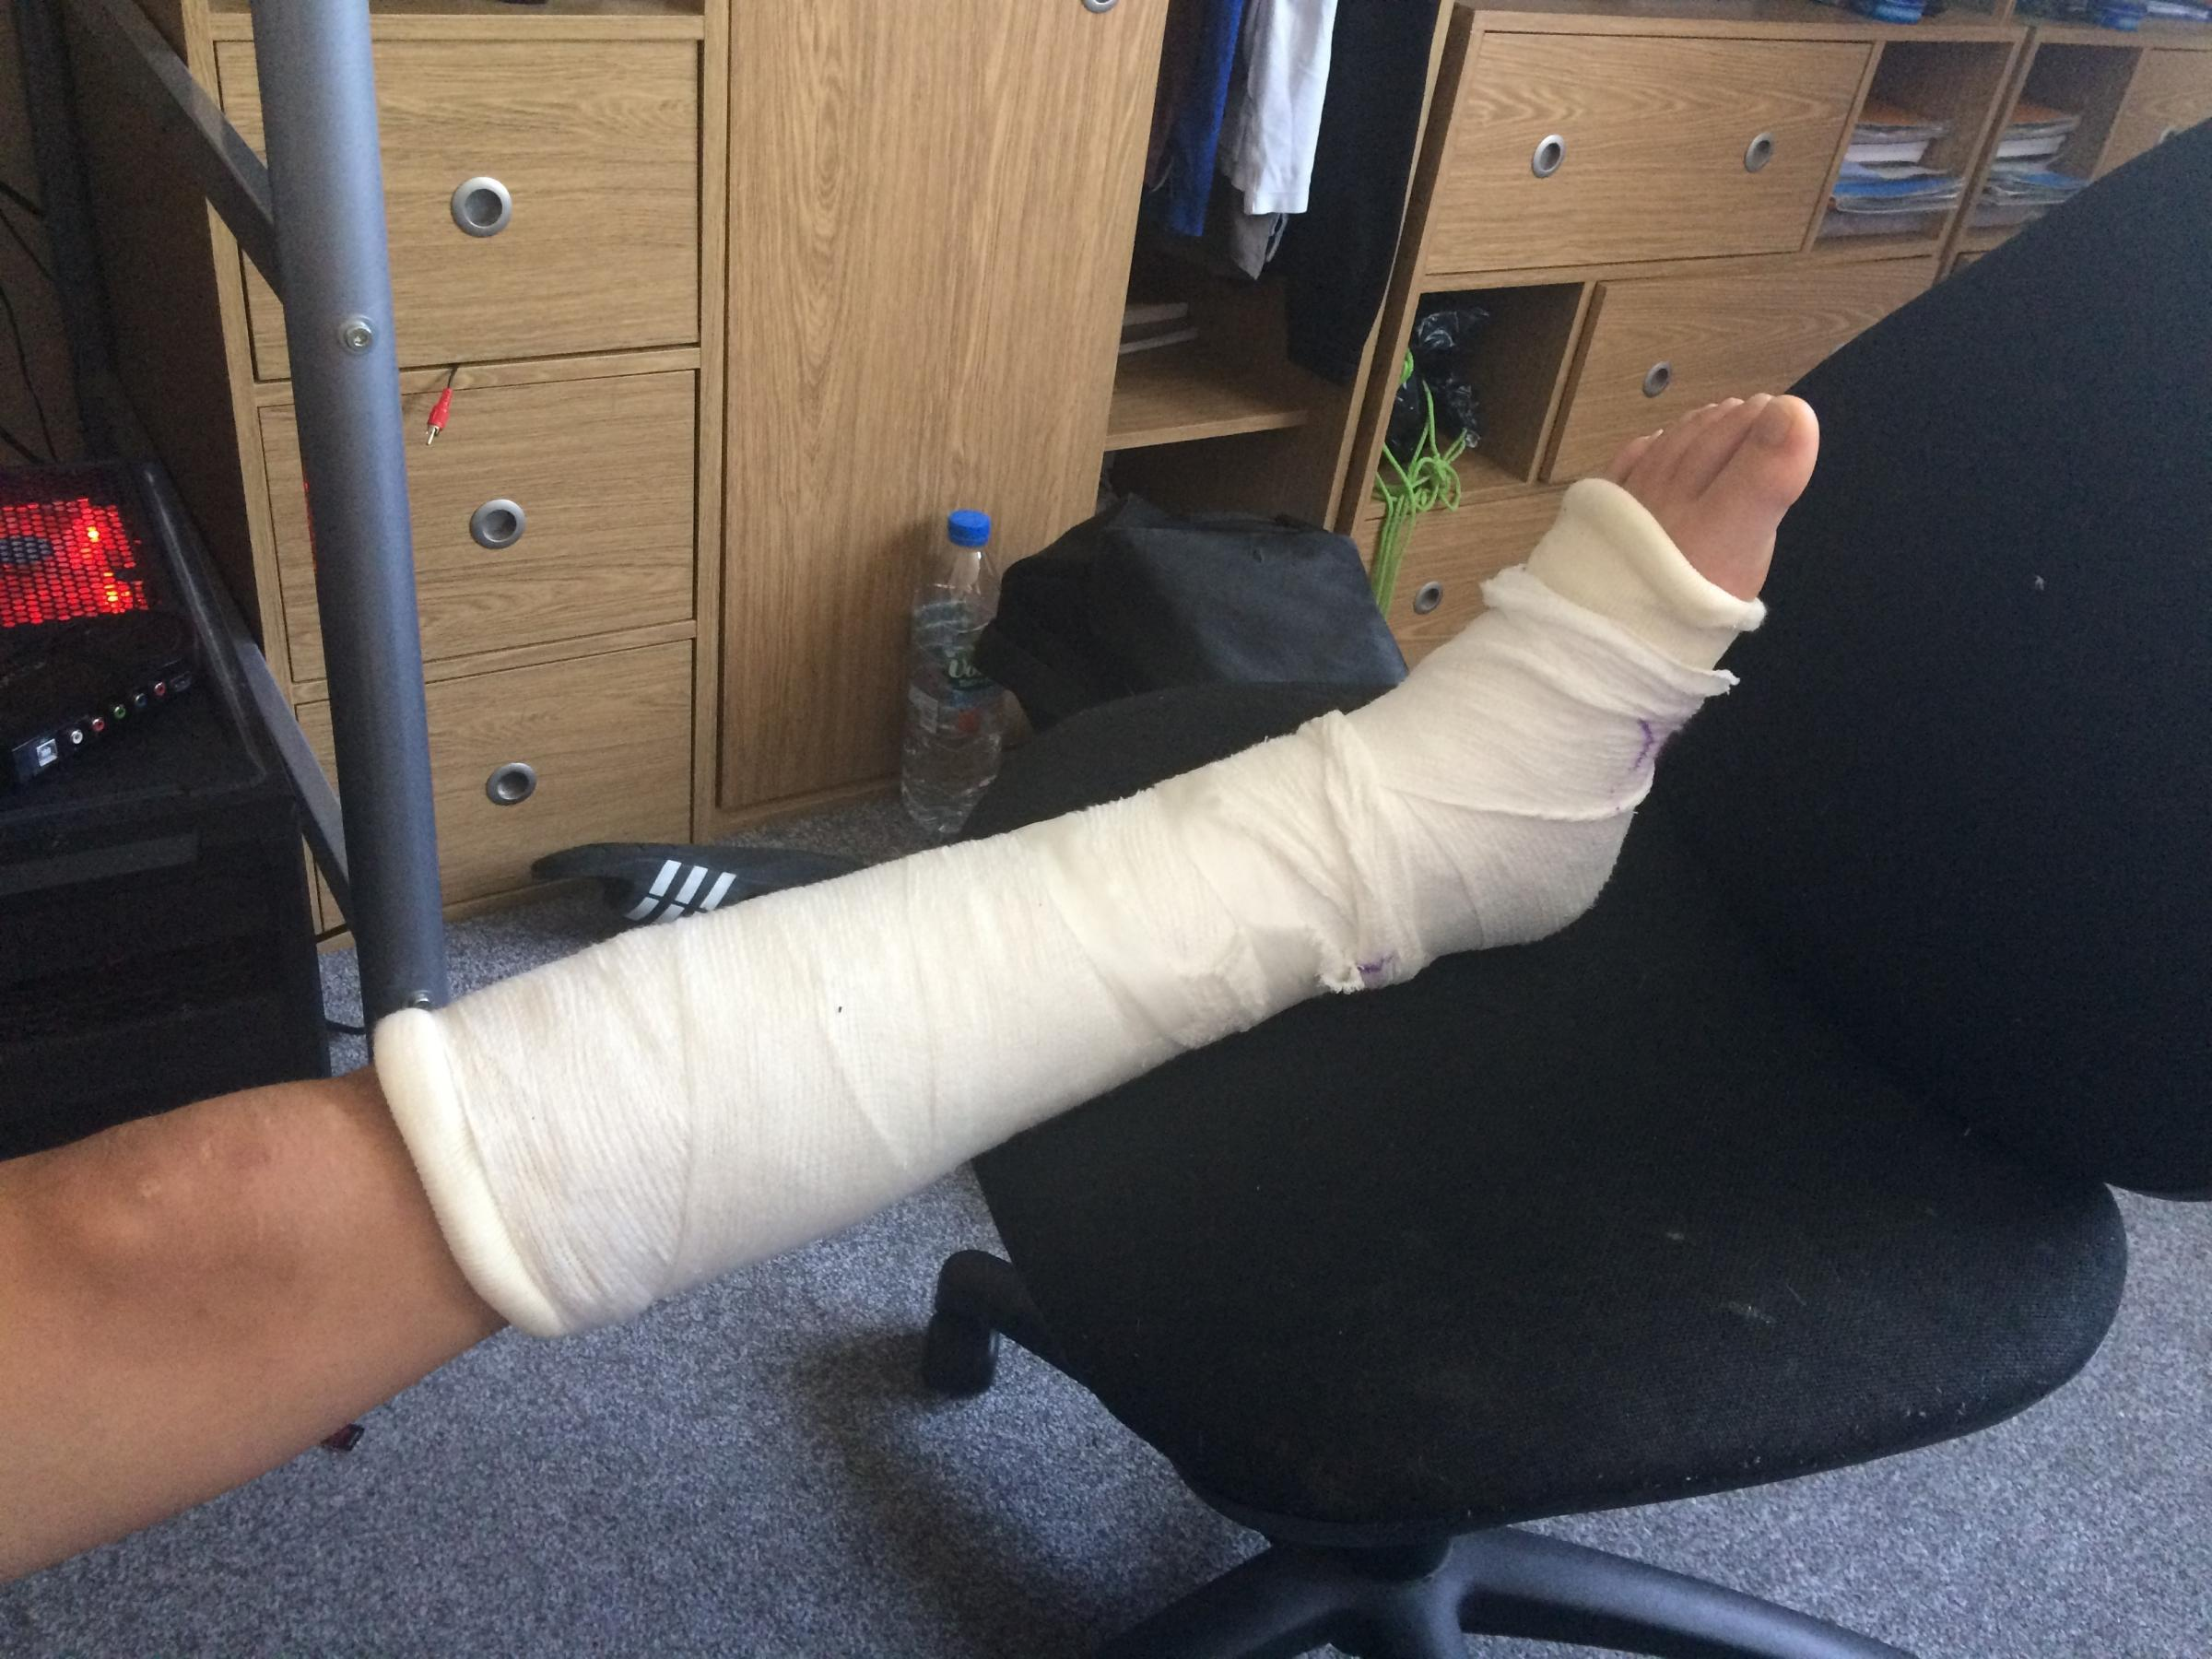 Callum has to have a cast on his leg until his injuries heal